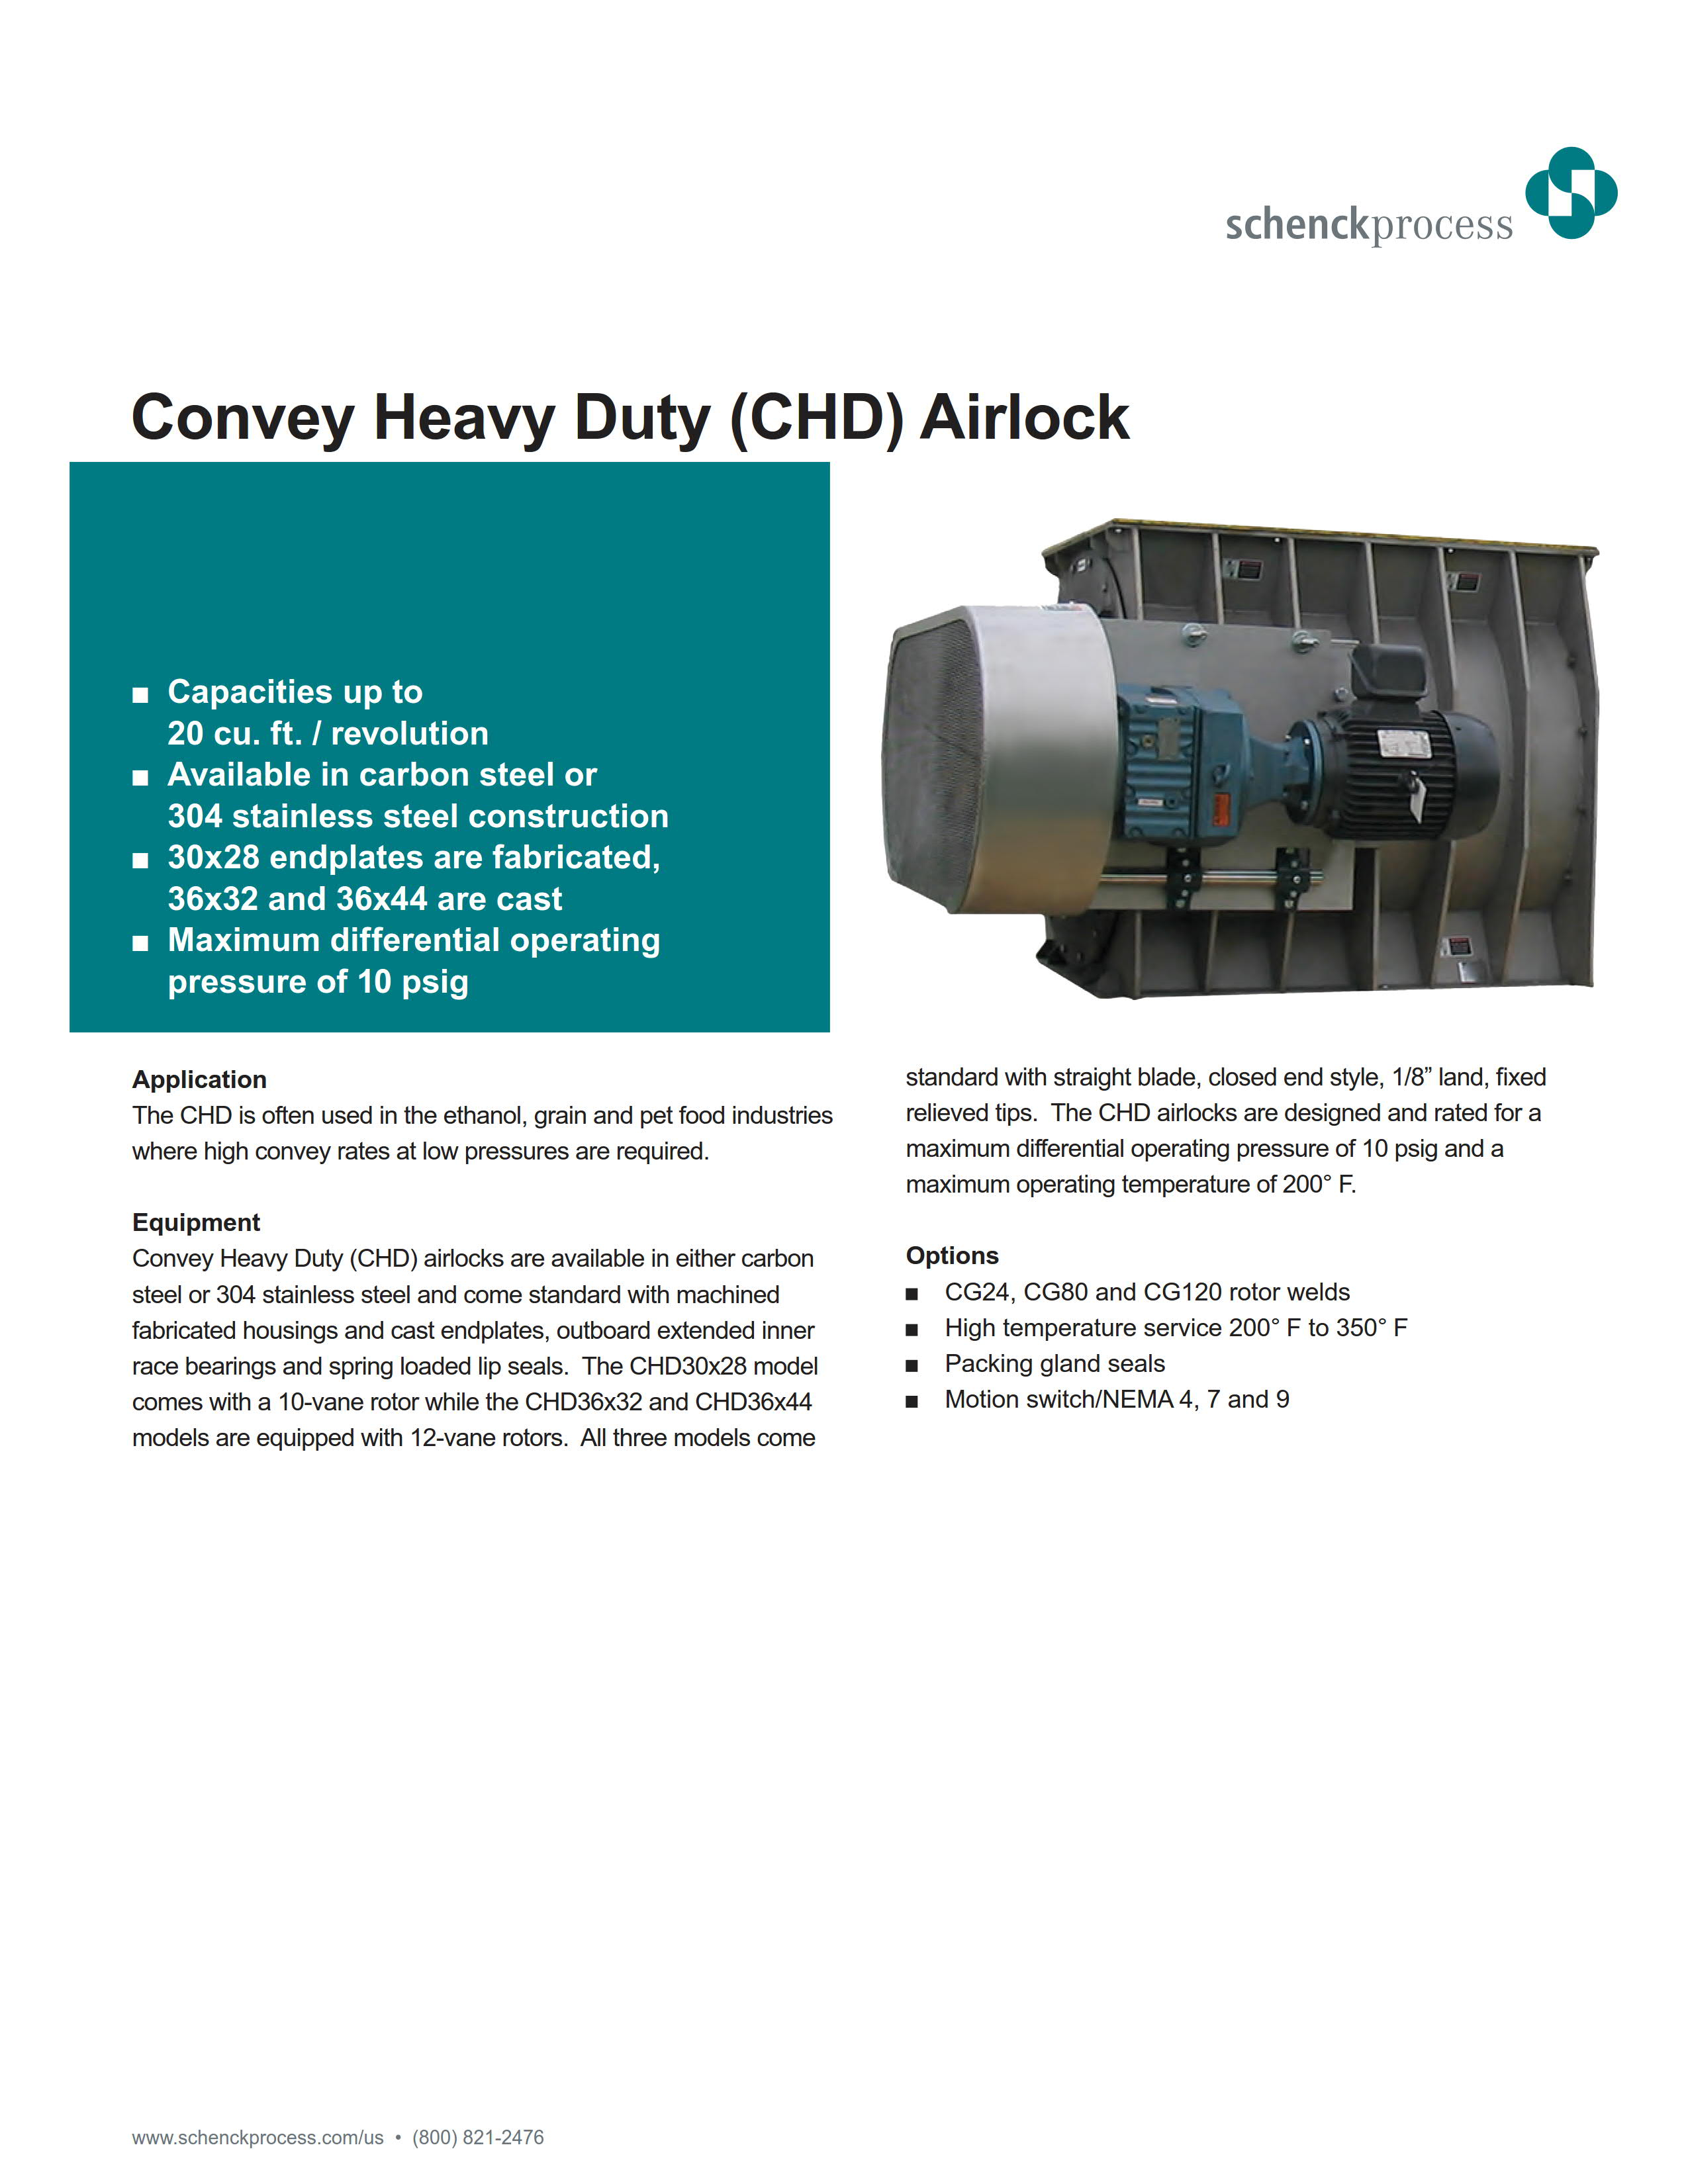 Convey Heavy Duty (CHD) Airlock